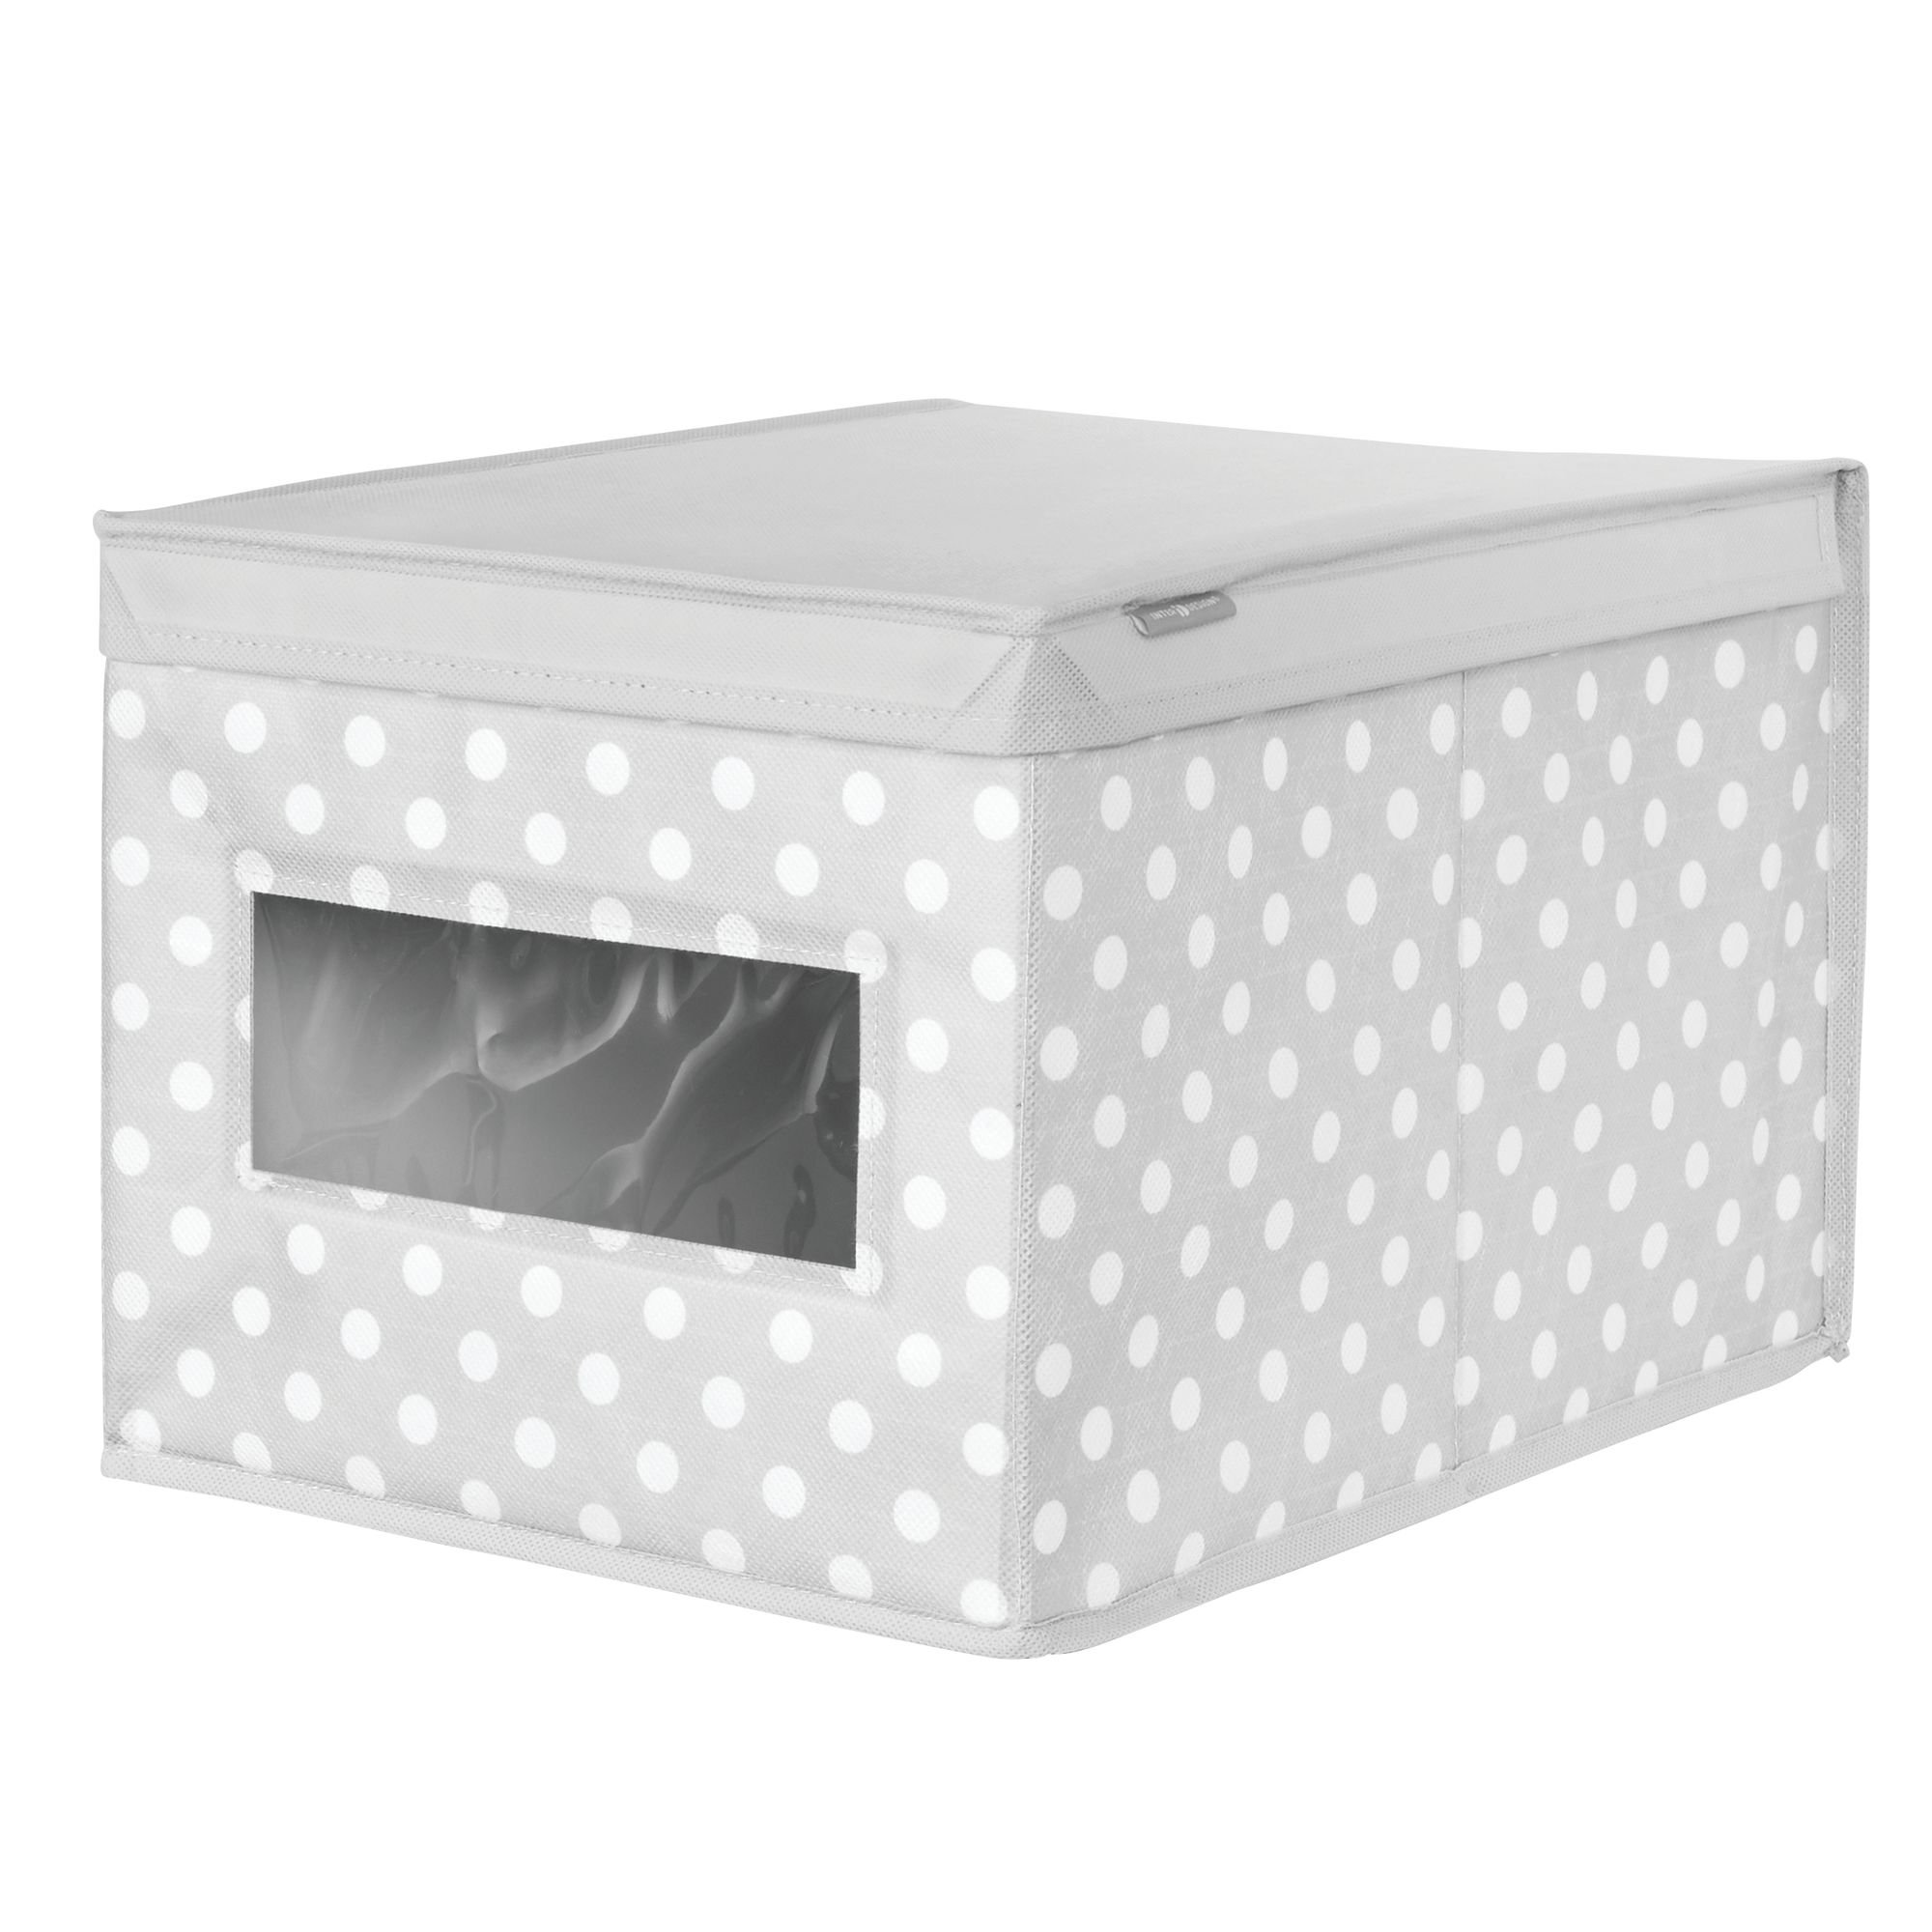 mDesign Soft Stackable Fabric Closet Storage Organizer Holder Box - Clear Window, Attached Hinged Lid, for Child/Kids Room, Nursery - Polka Dot Pattern - Large, Pack of 2, Light Gray with White Dots by mDesign (Image #7)